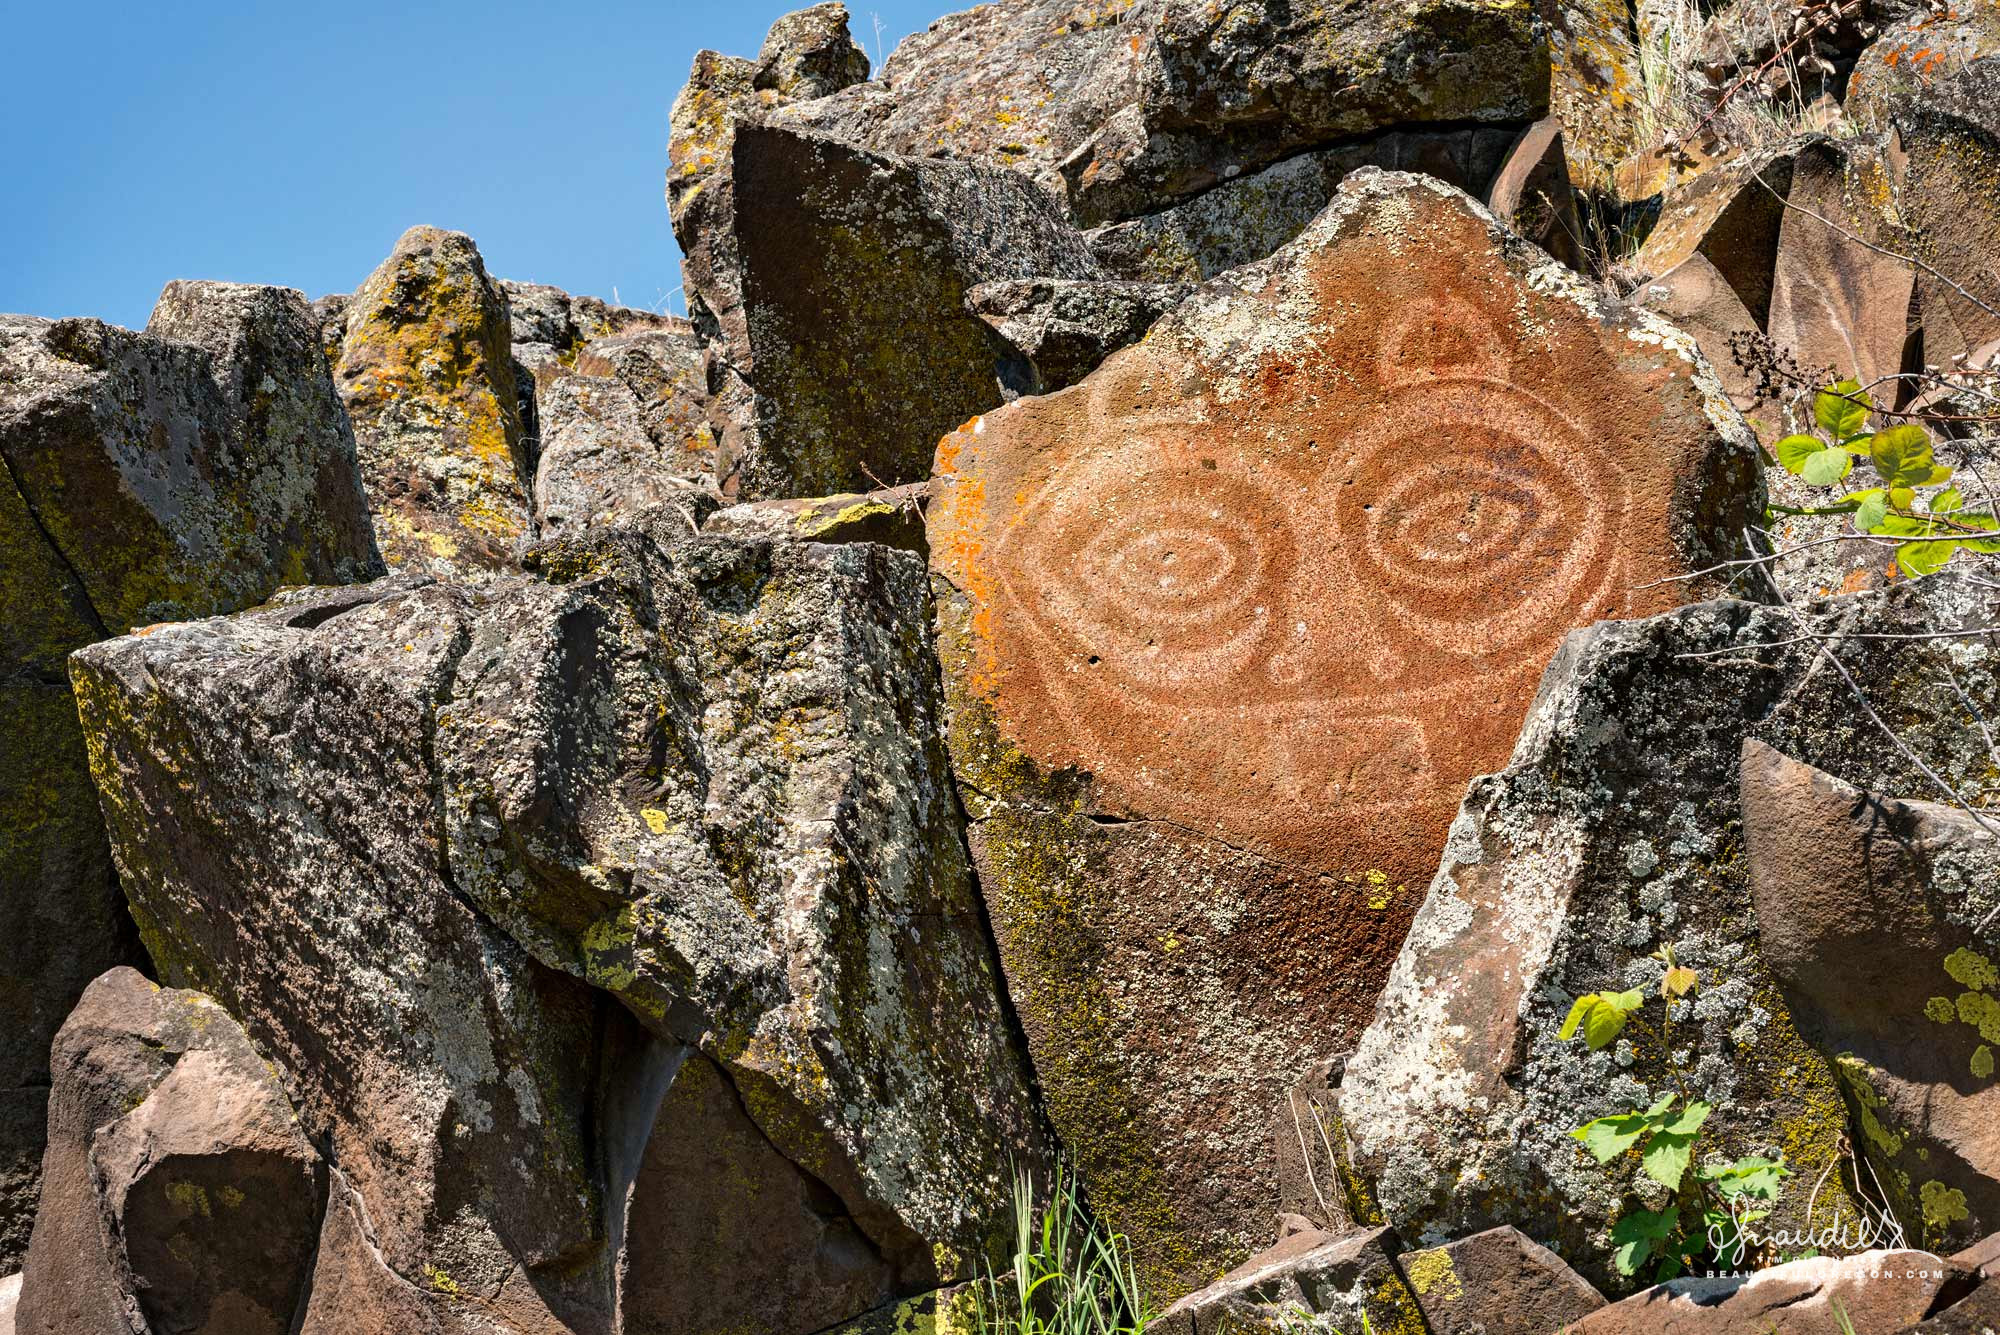 """Tsagiglalal, """"She Who Watches"""" the famous Columbia Gorge pictograph found at Columbia Hills State Park. Klickitat County, Washington State."""